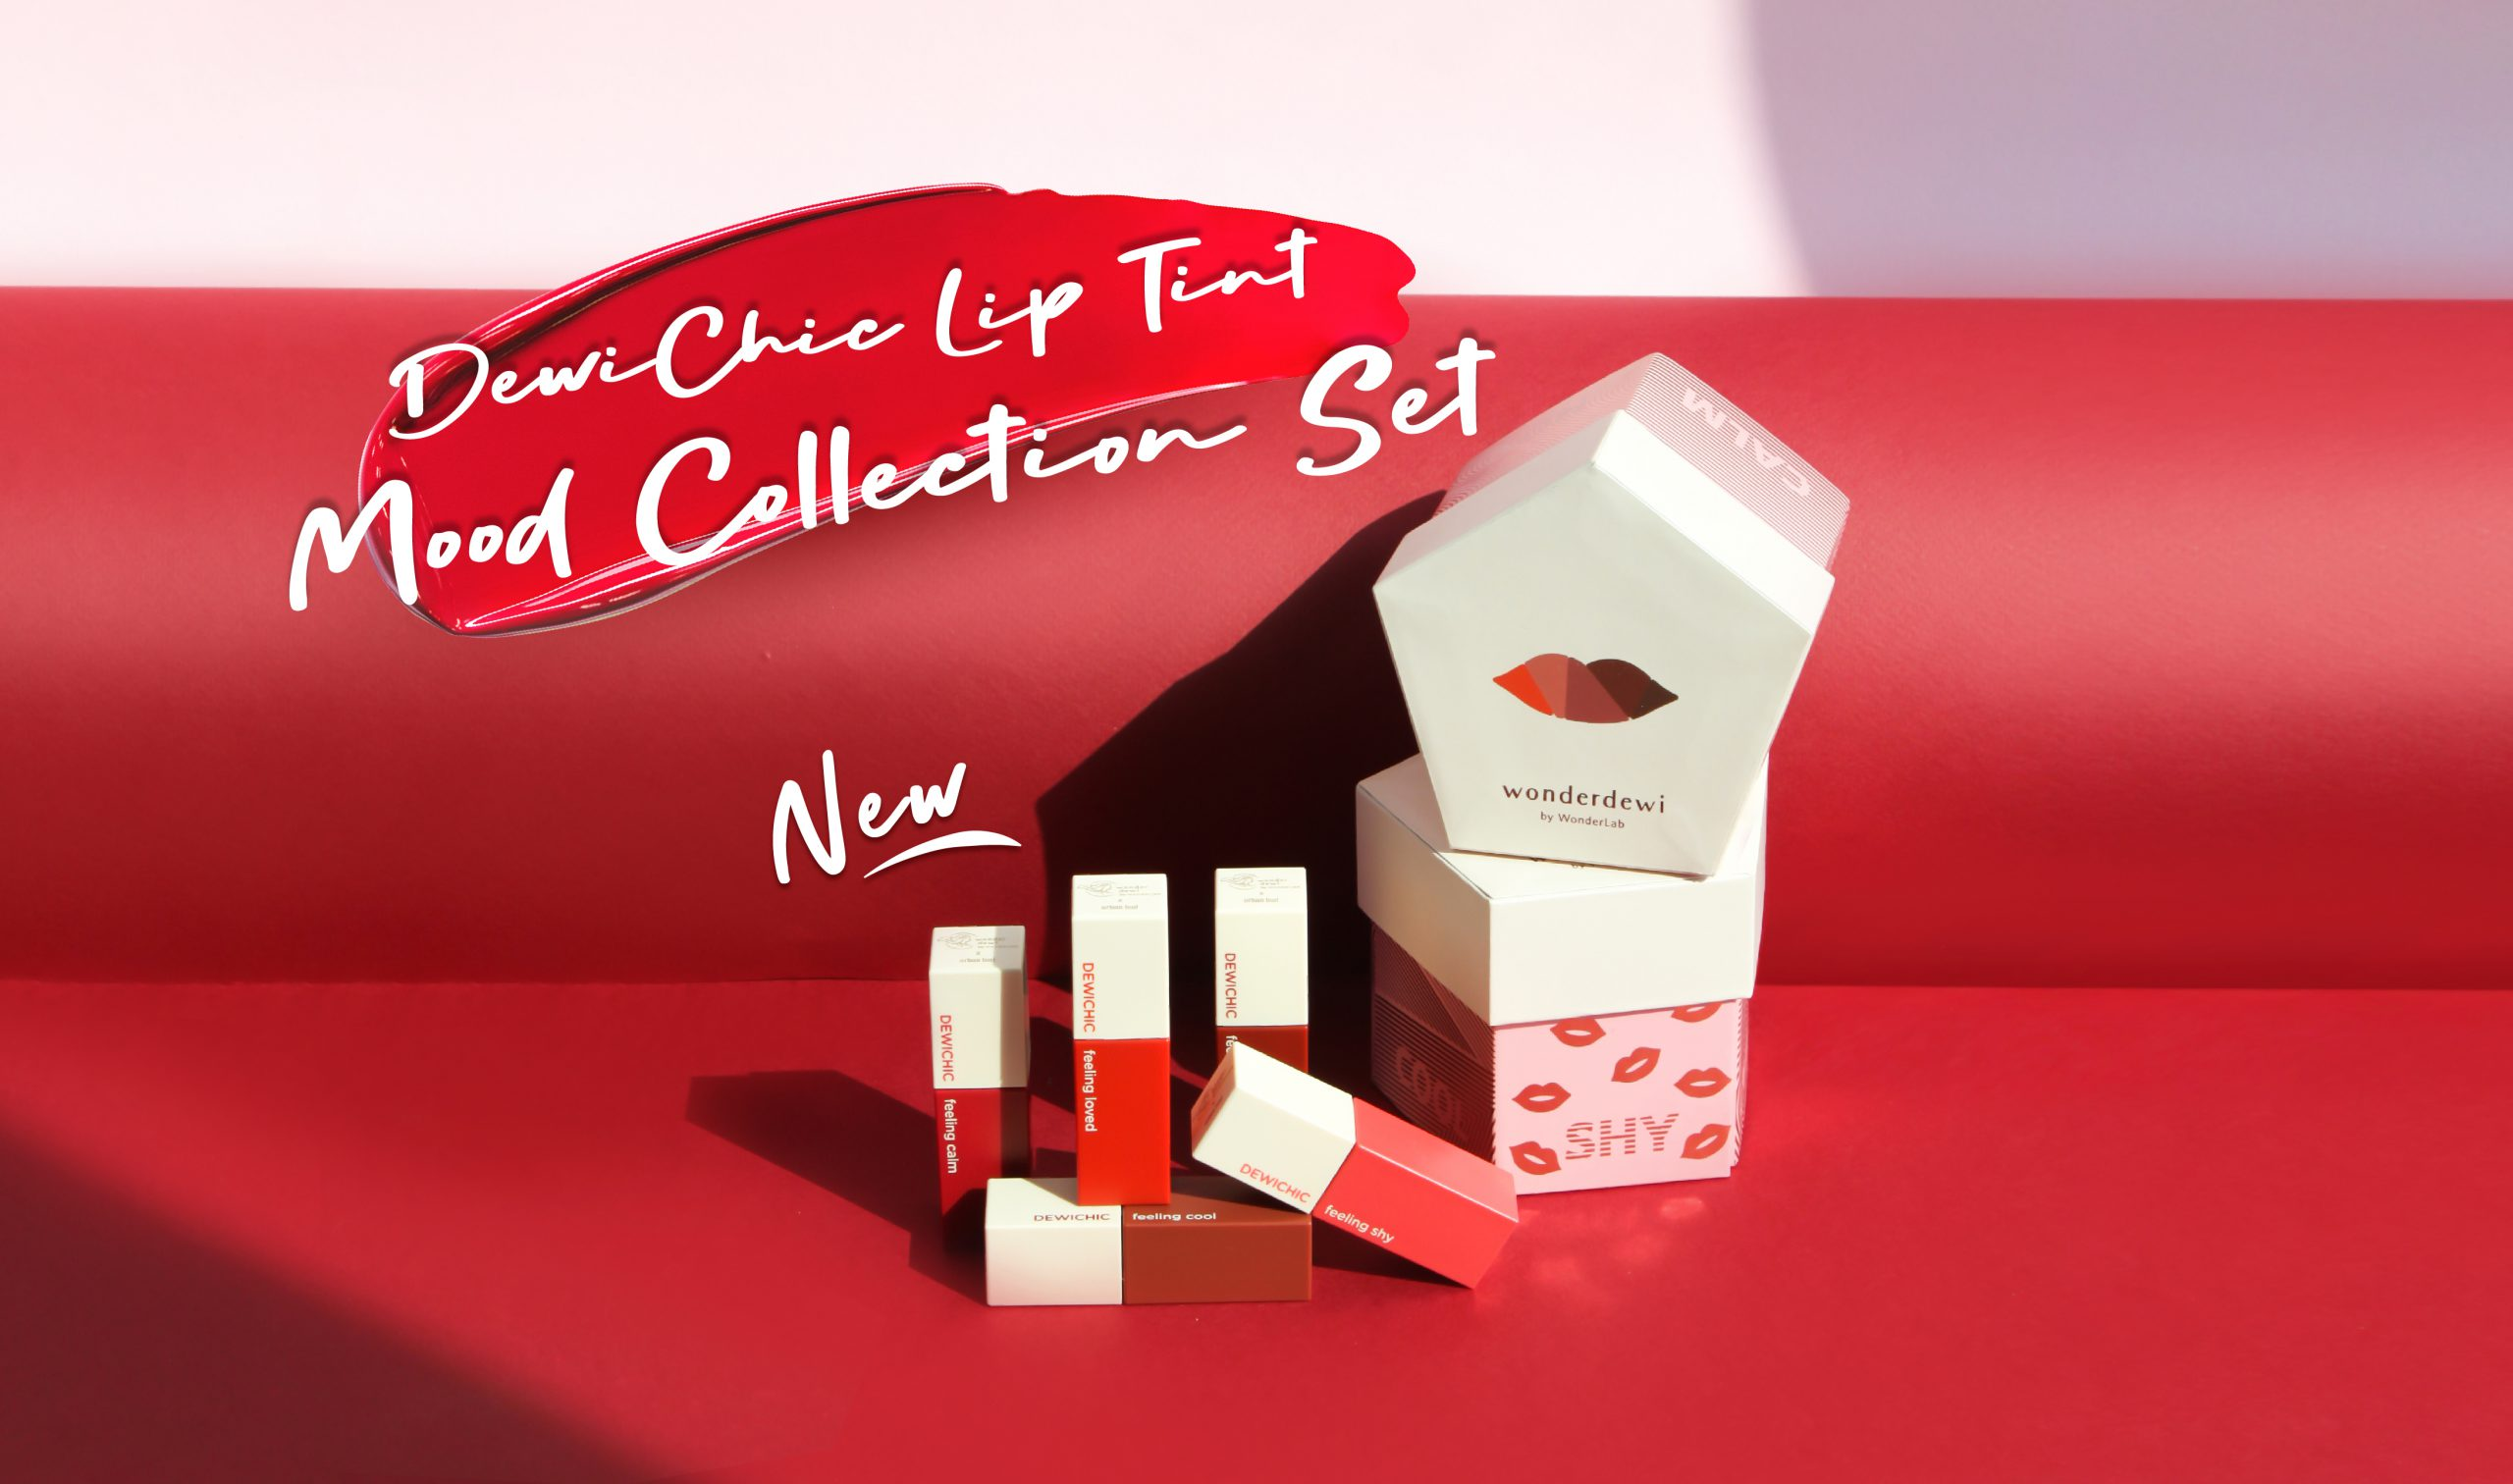 Liptint bundle W1050xH620 01 1 scaled